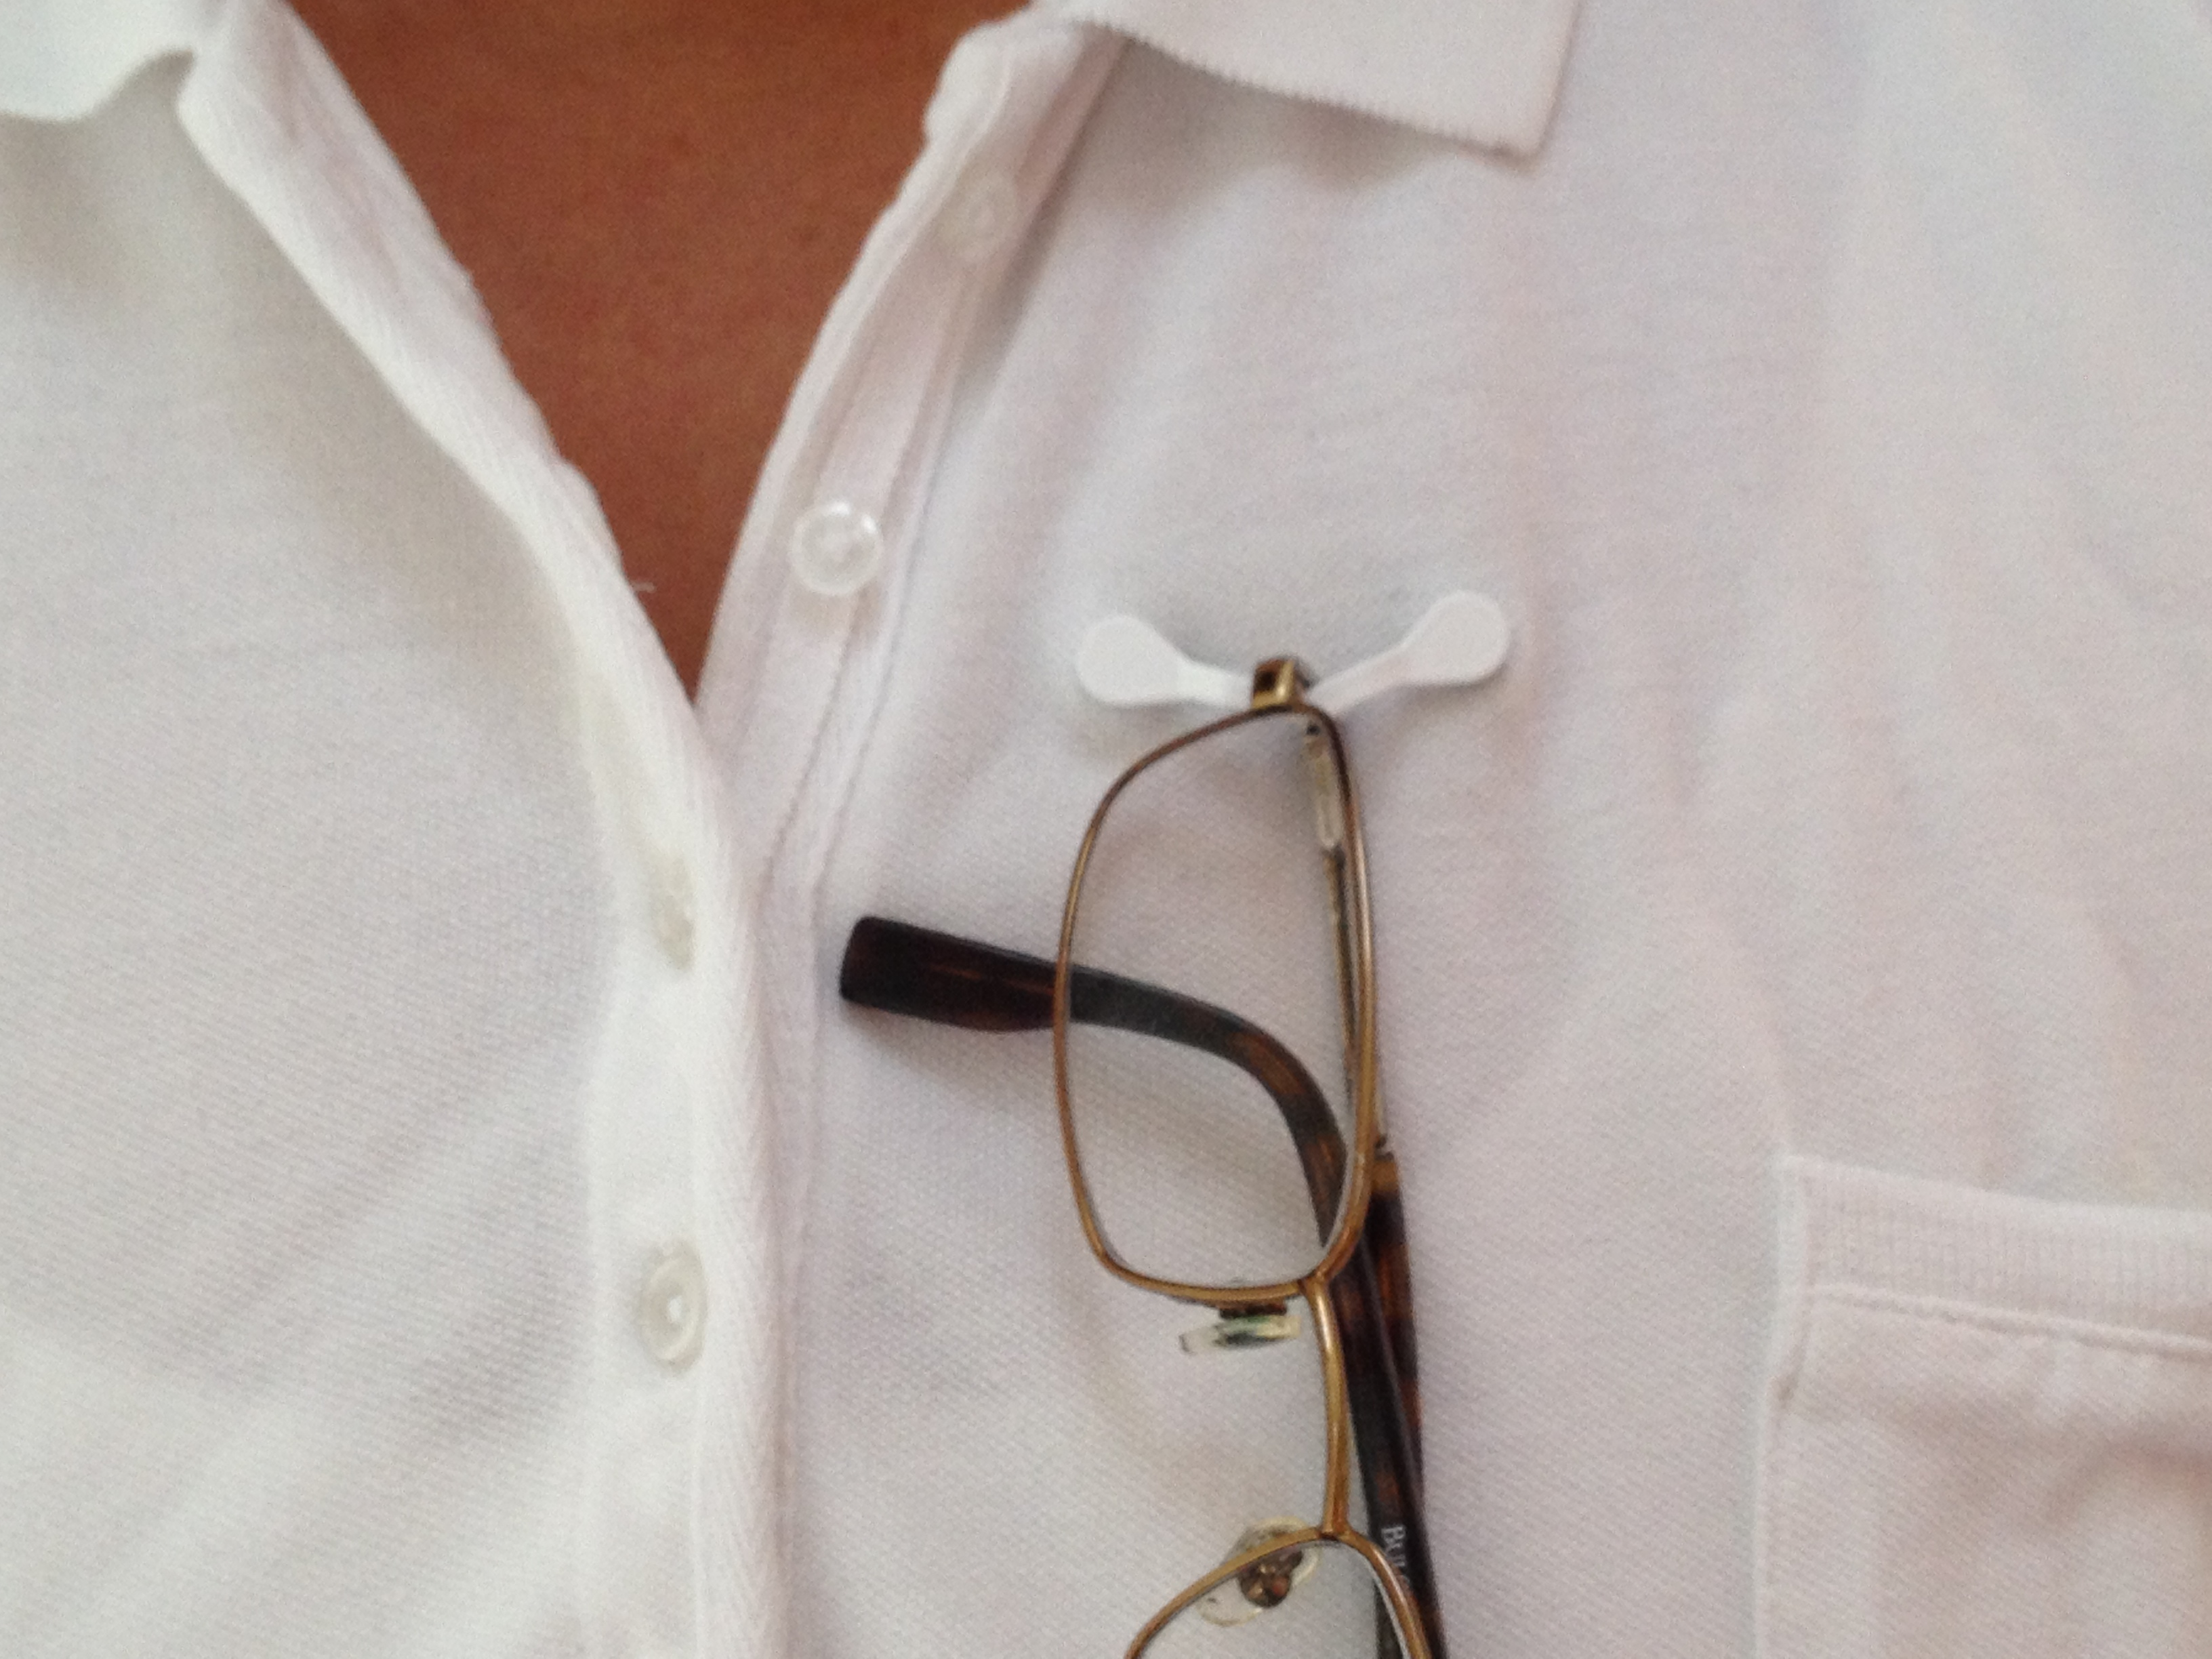 24298cd78e1d Readerest Magnetic Eyeglass Holder by Rick Hopper Concept Announced by  Nifty-Nifty.com